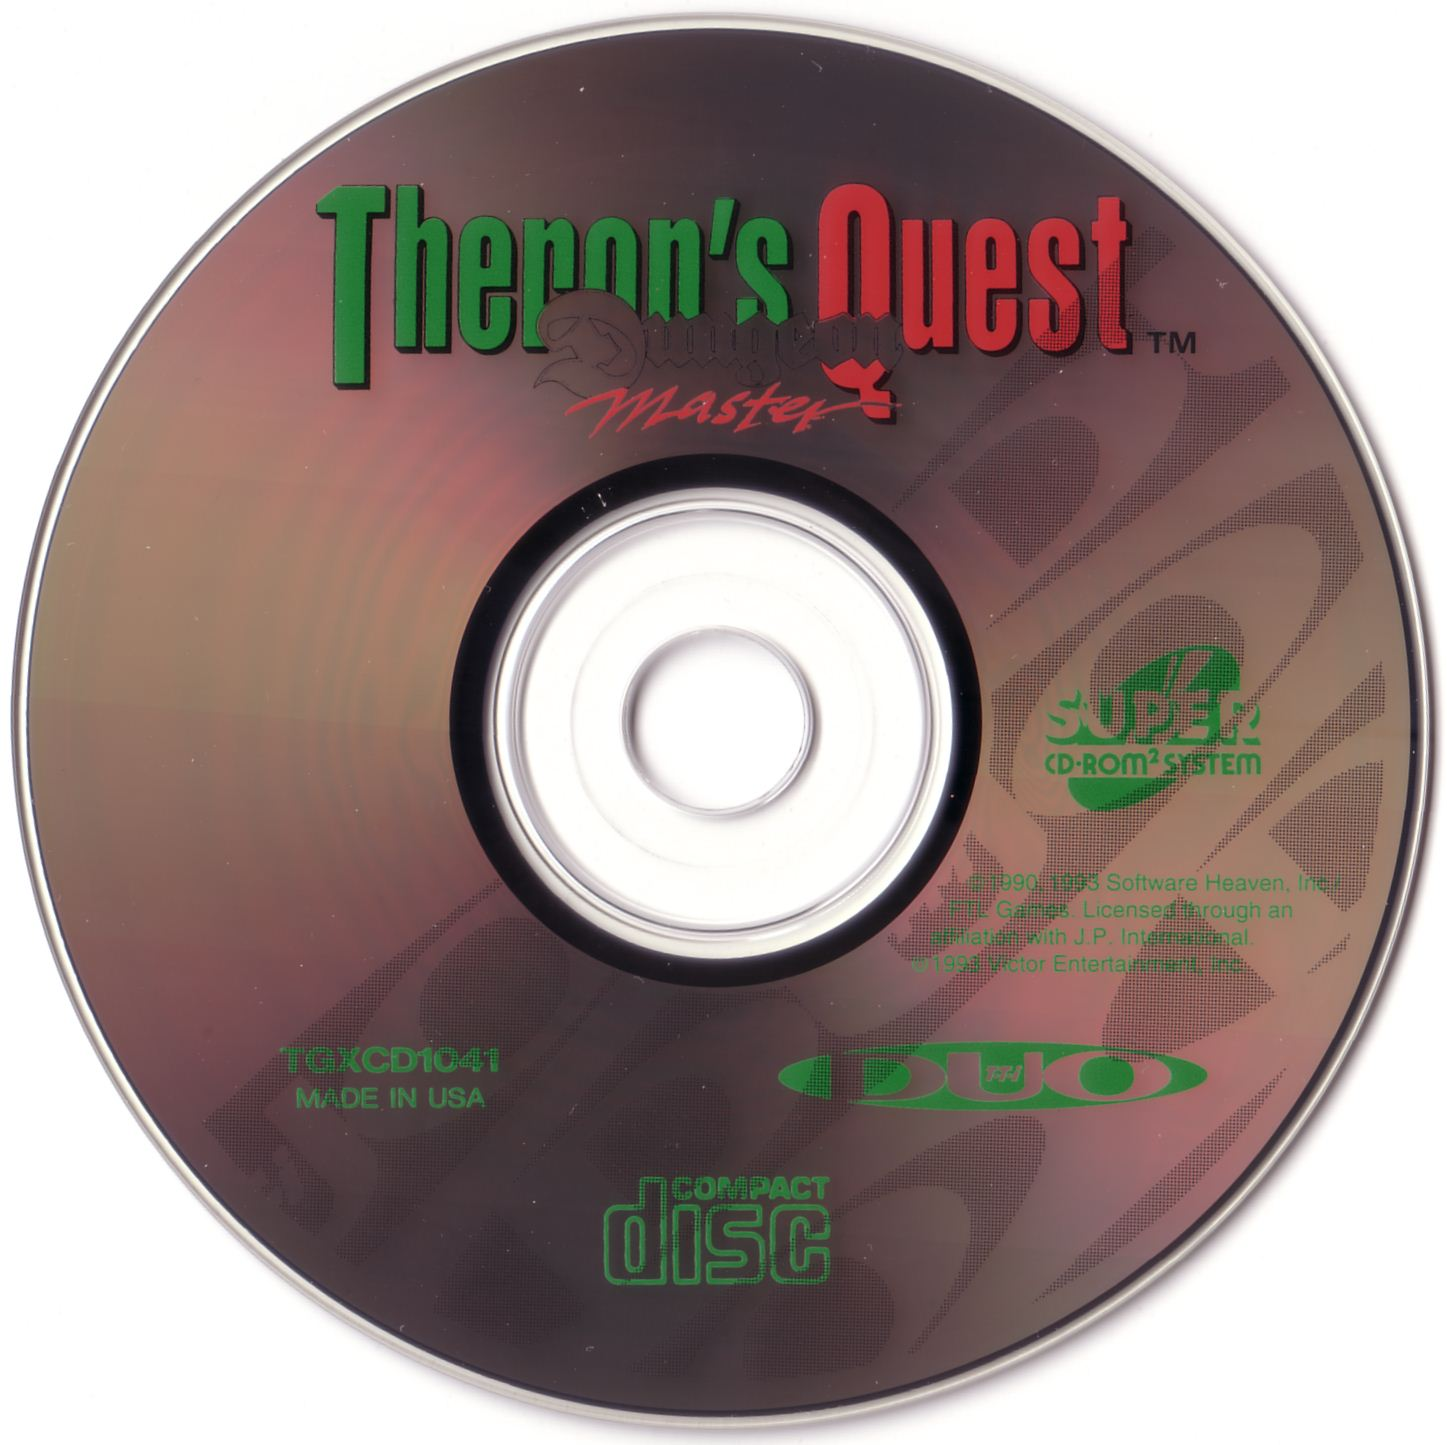 Game - Theron's Quest - US - Turbografx - Compact Disc - Front - Scan